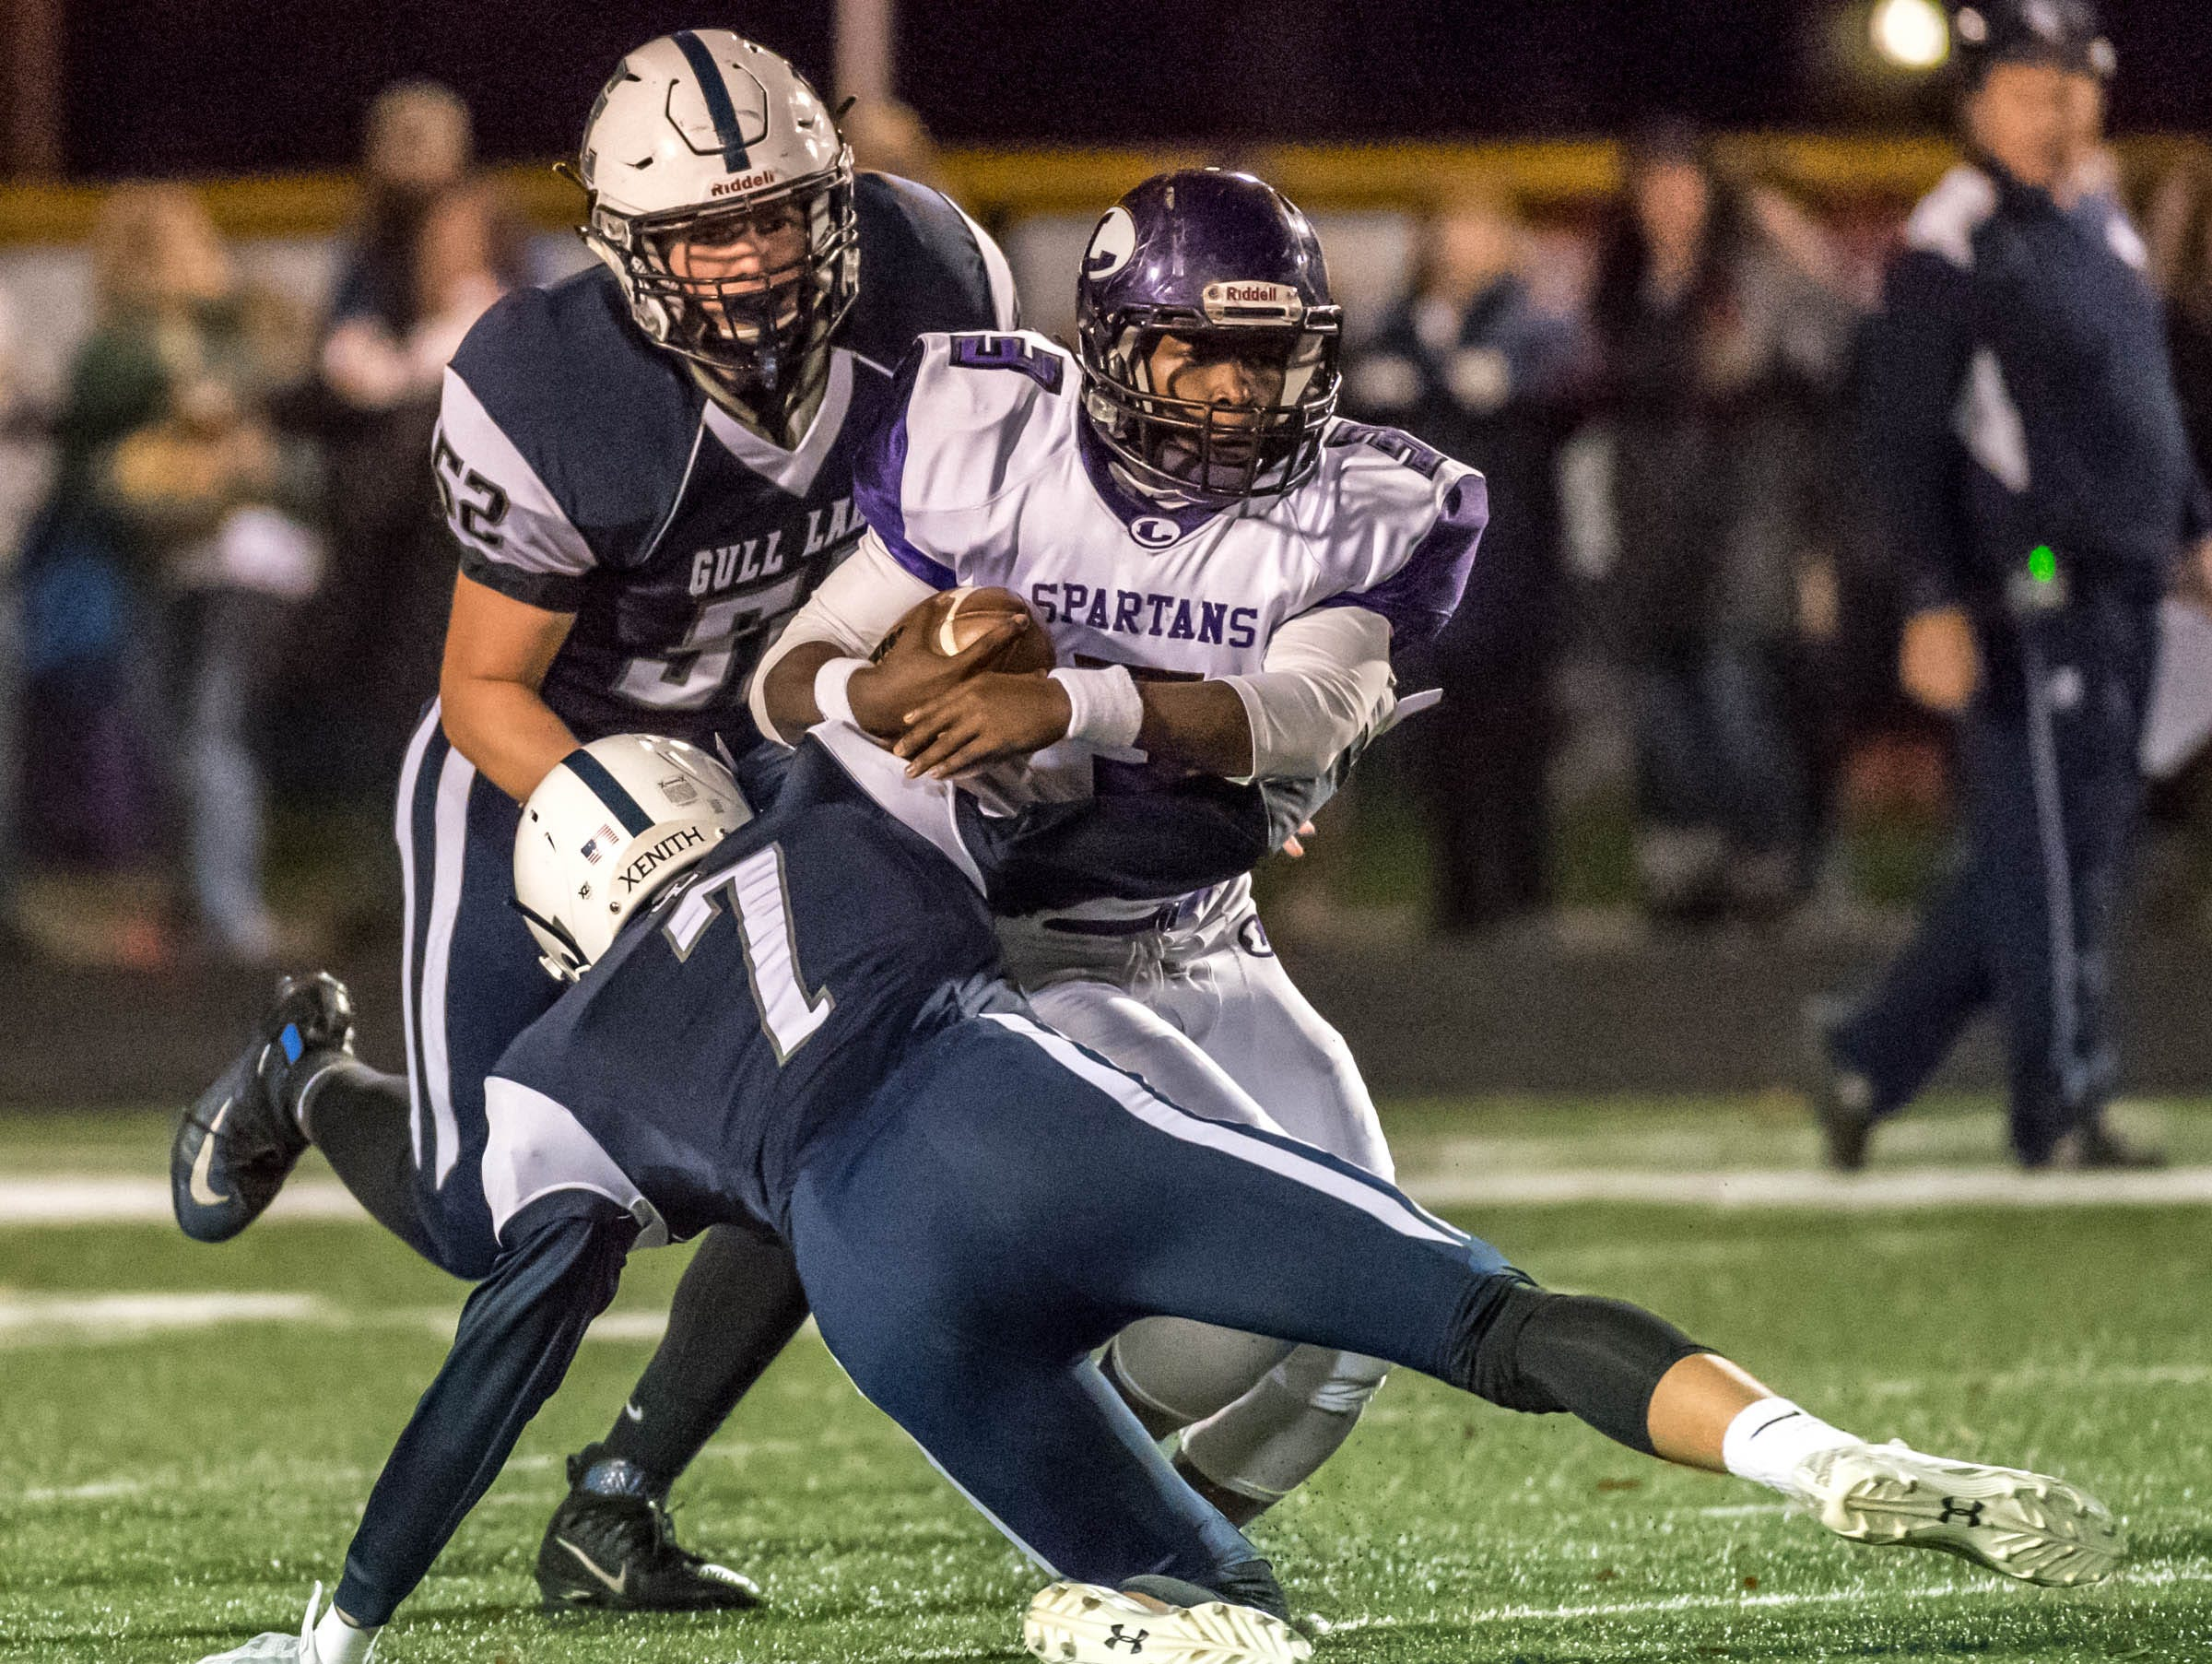 Gull Lake's Ryan McMullen (7) and Avery Eastman (52) bring down Lakeview's JayVion Settles (3) during first half action Friday evening.